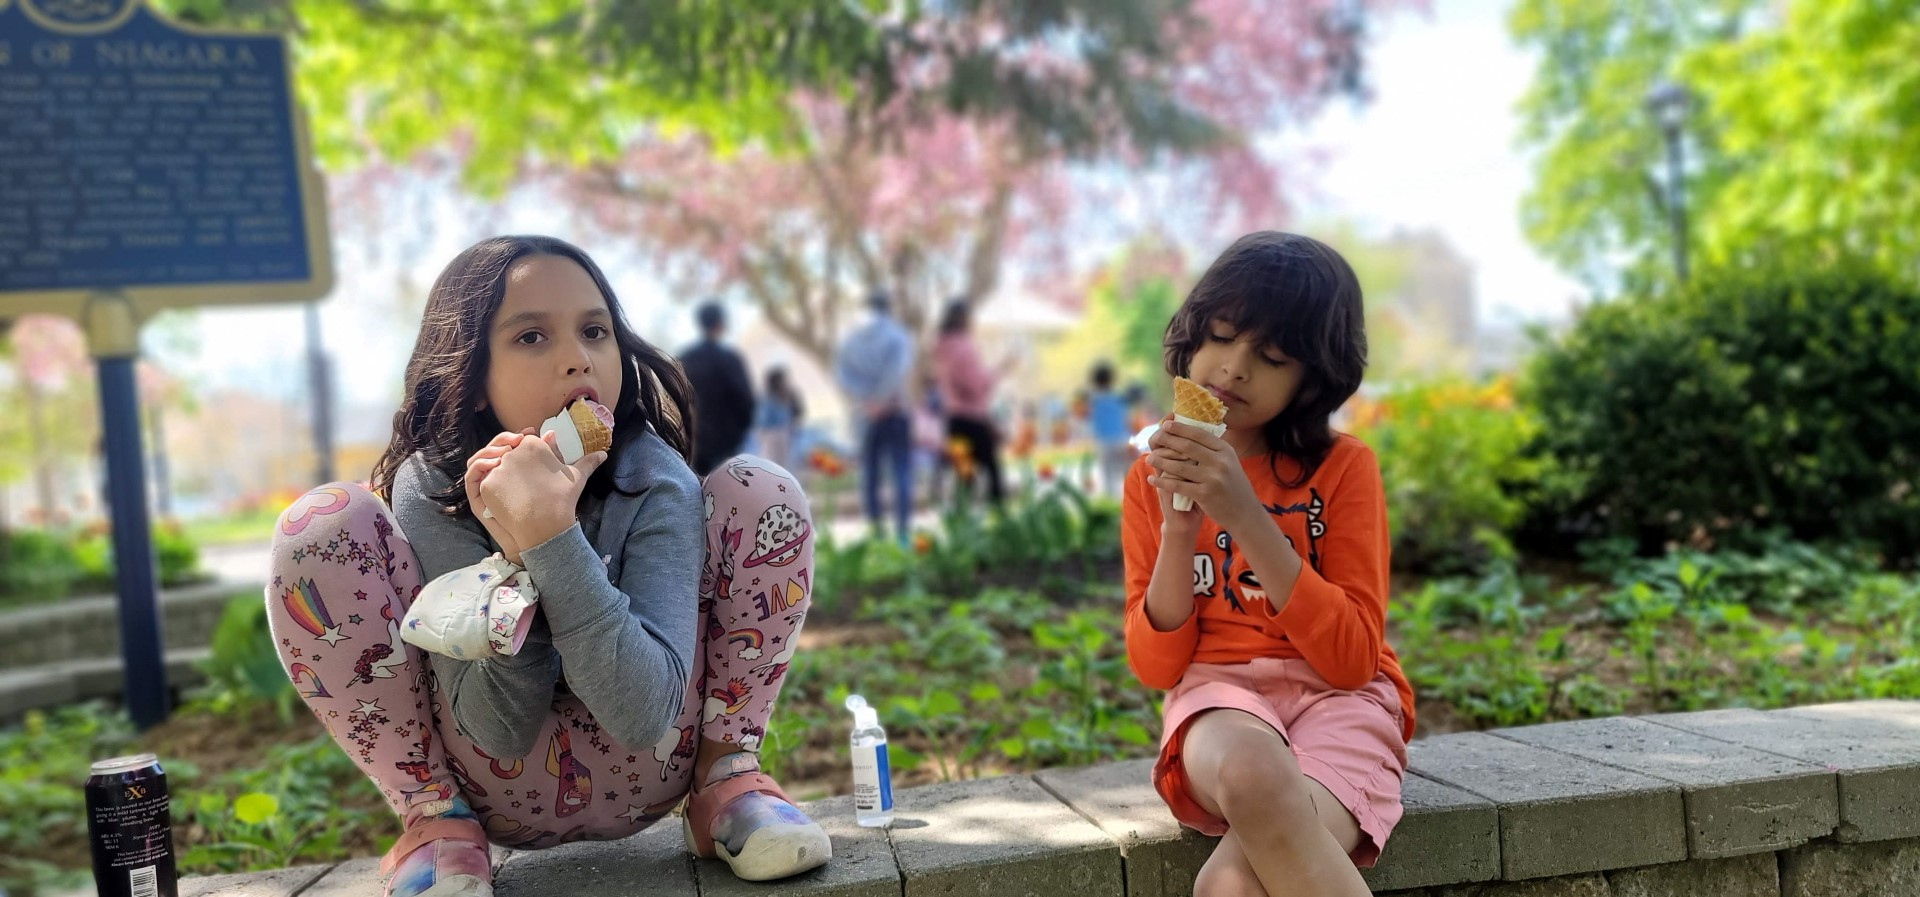 kids eating ice cream at park